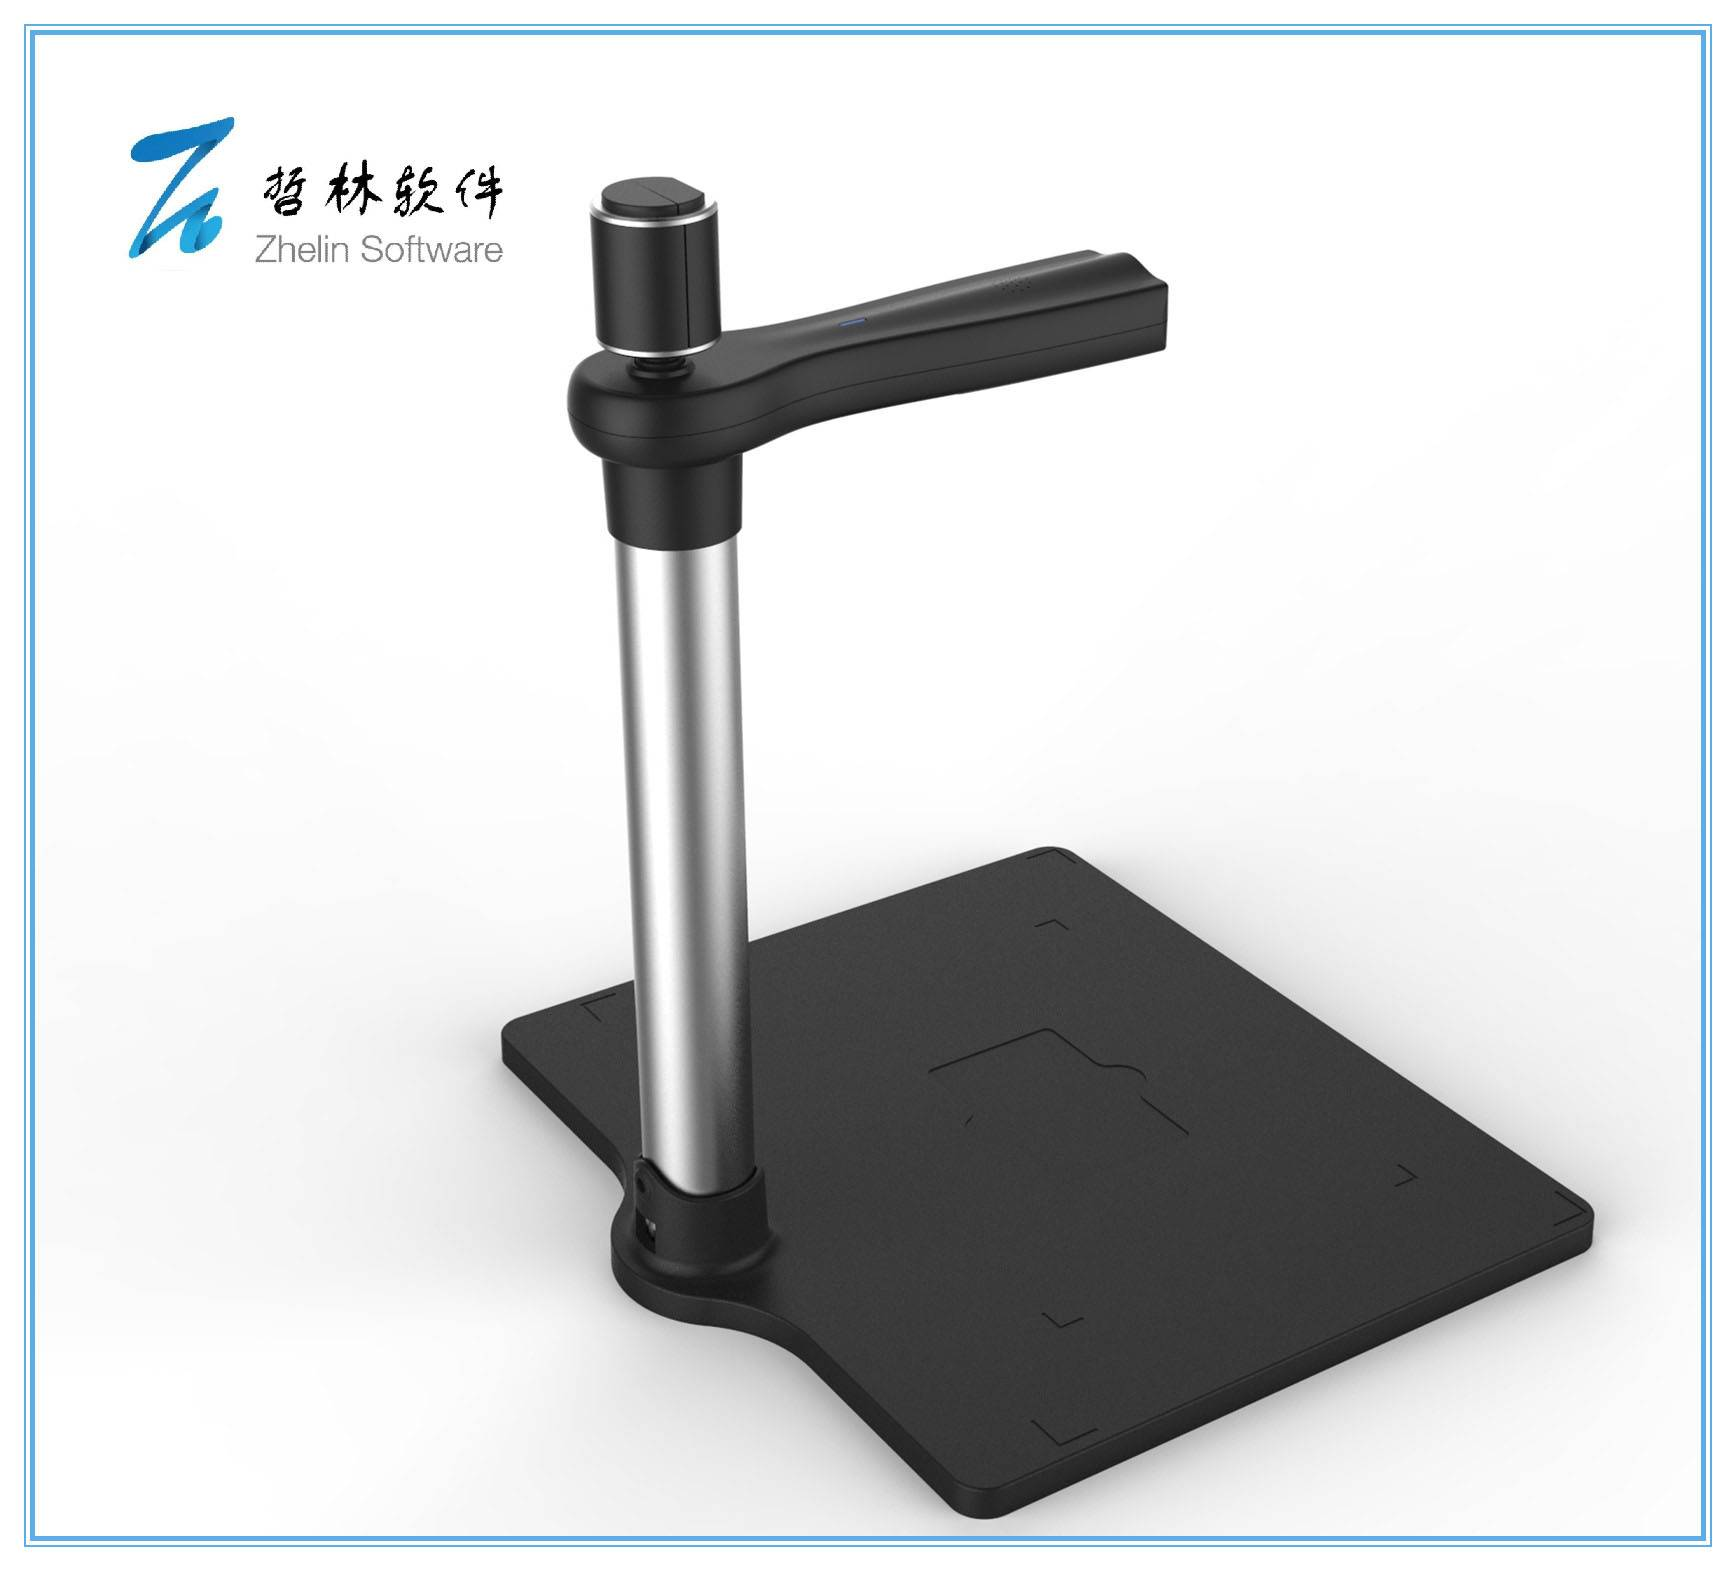 Two Camera A4 Size Document Scanner USB 2.0 ZL-1000TS